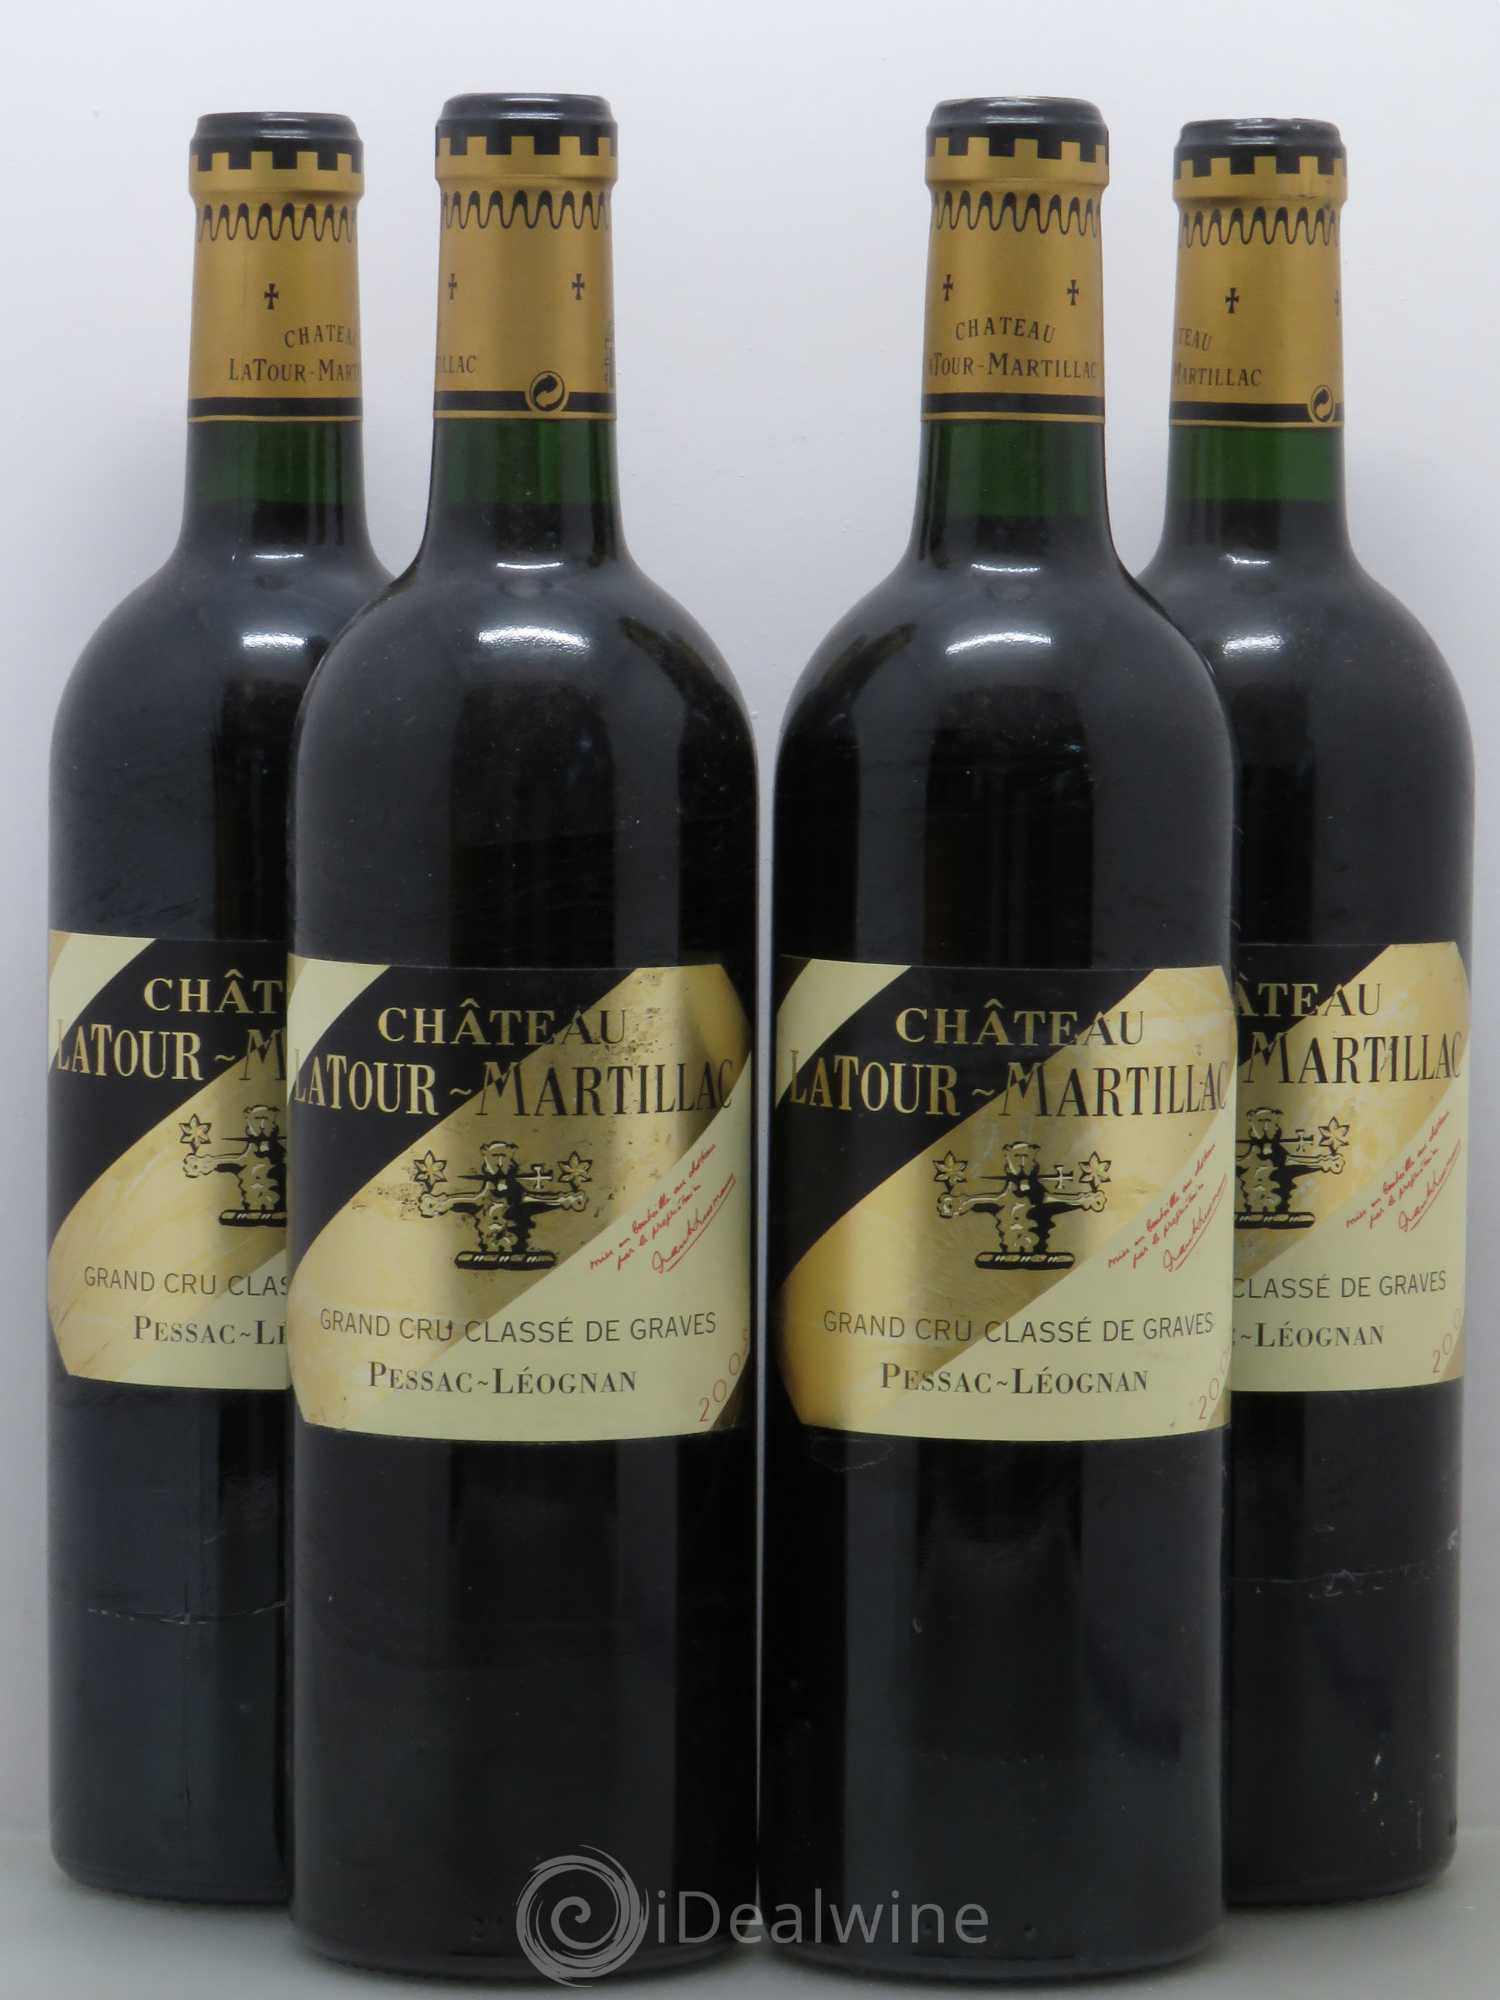 acheter ch teau latour martillac cru class de graves 2005 lot 13073. Black Bedroom Furniture Sets. Home Design Ideas